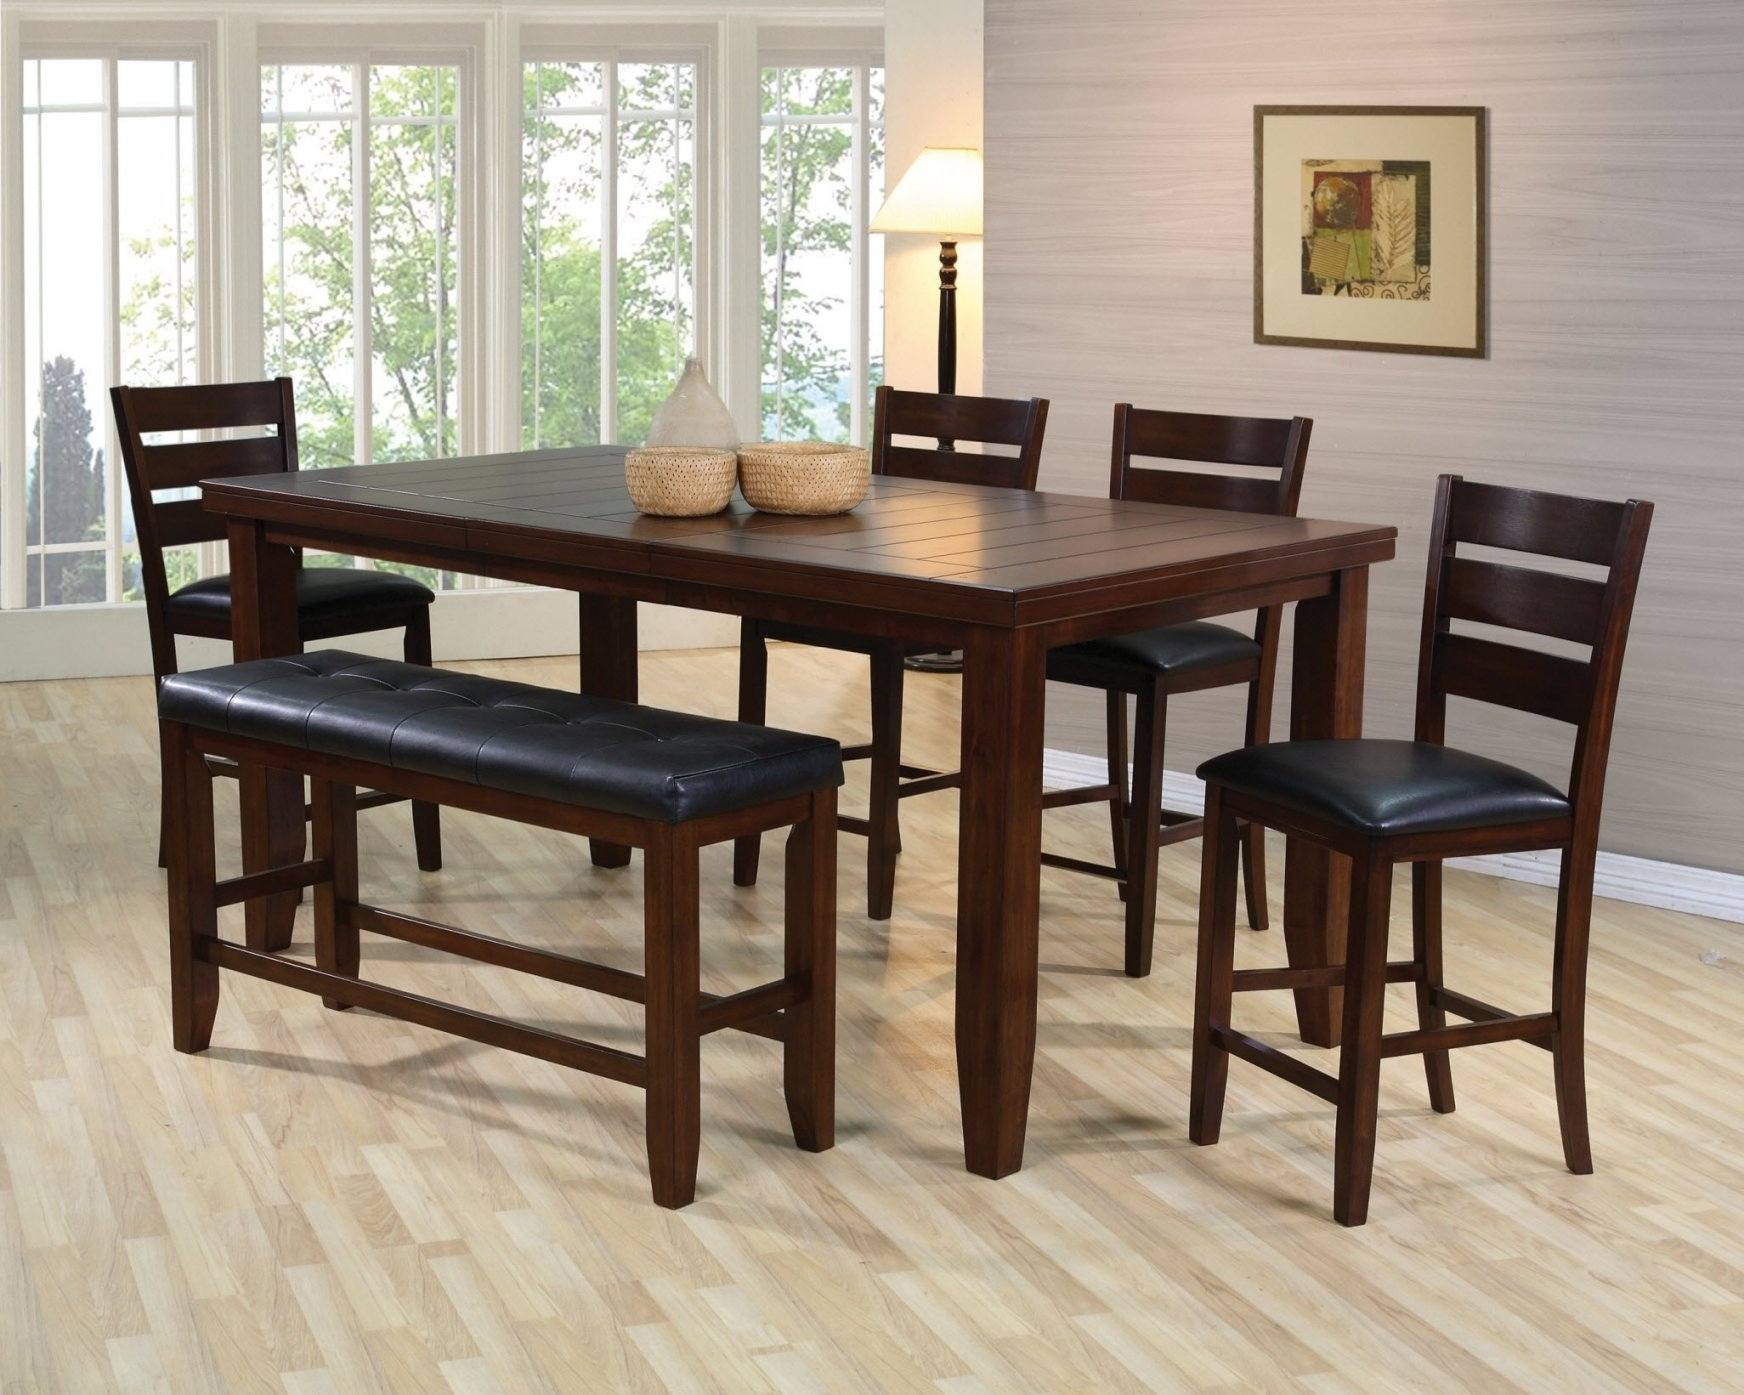 Cheap Dining Sets Within Famous Elegant Shining Cheap Dining Table And Chairs All Room On Sets Under (View 21 of 25)